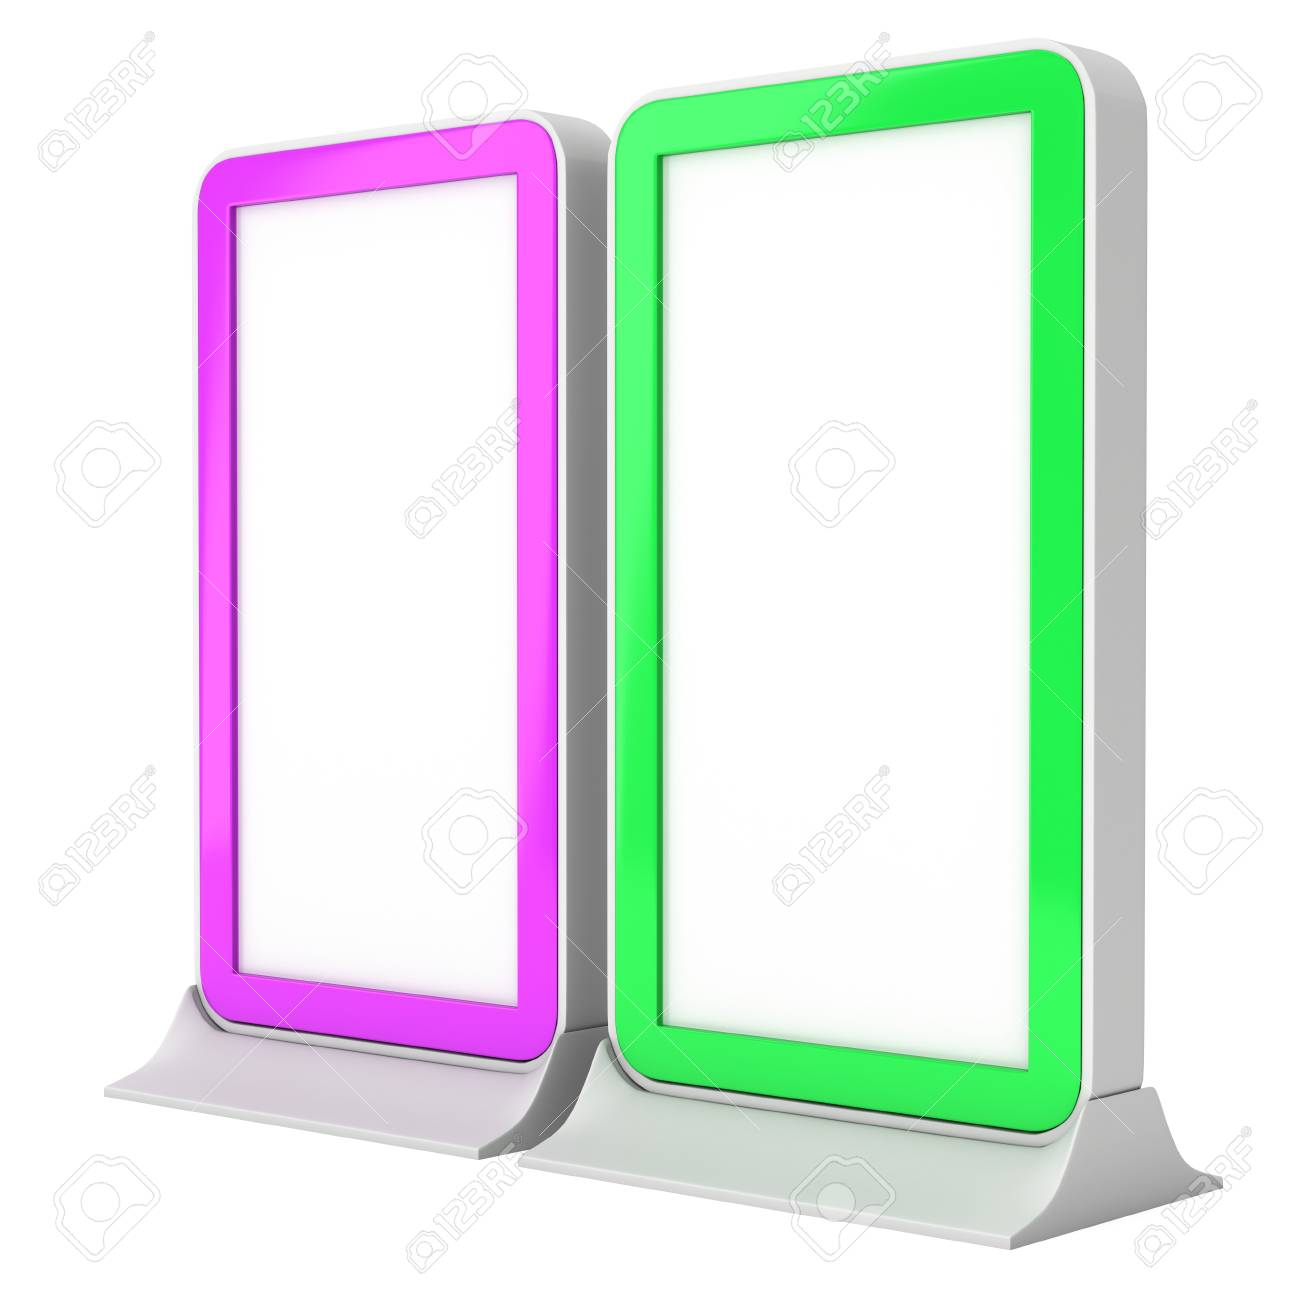 LCD Screen Stand purple and green  Blank Trade Show Booth  3d